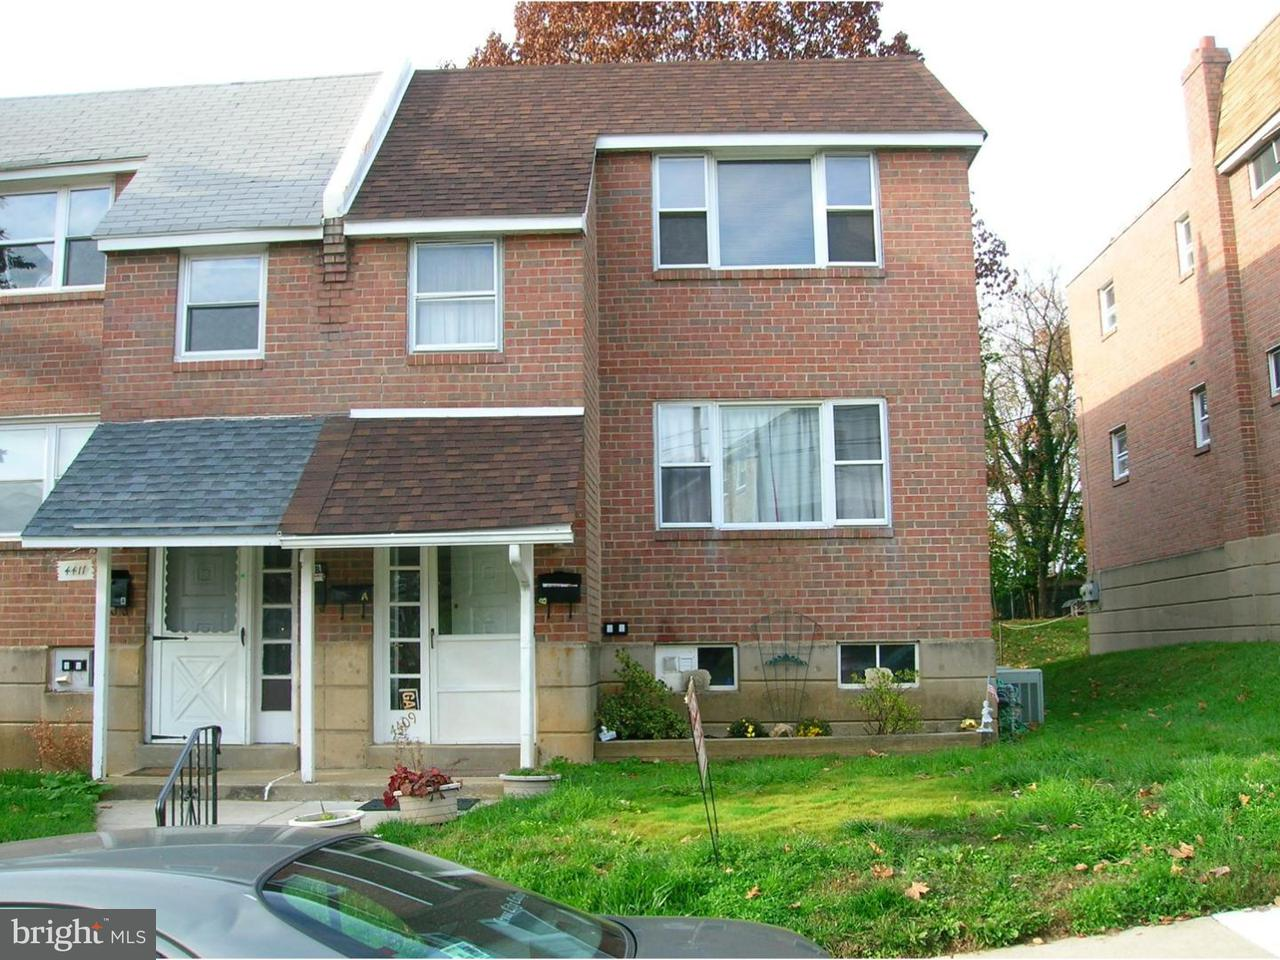 Townhouse for Rent at 4409 ROSEMONT AVE #2ND Drexel Hill, Pennsylvania 19026 United States